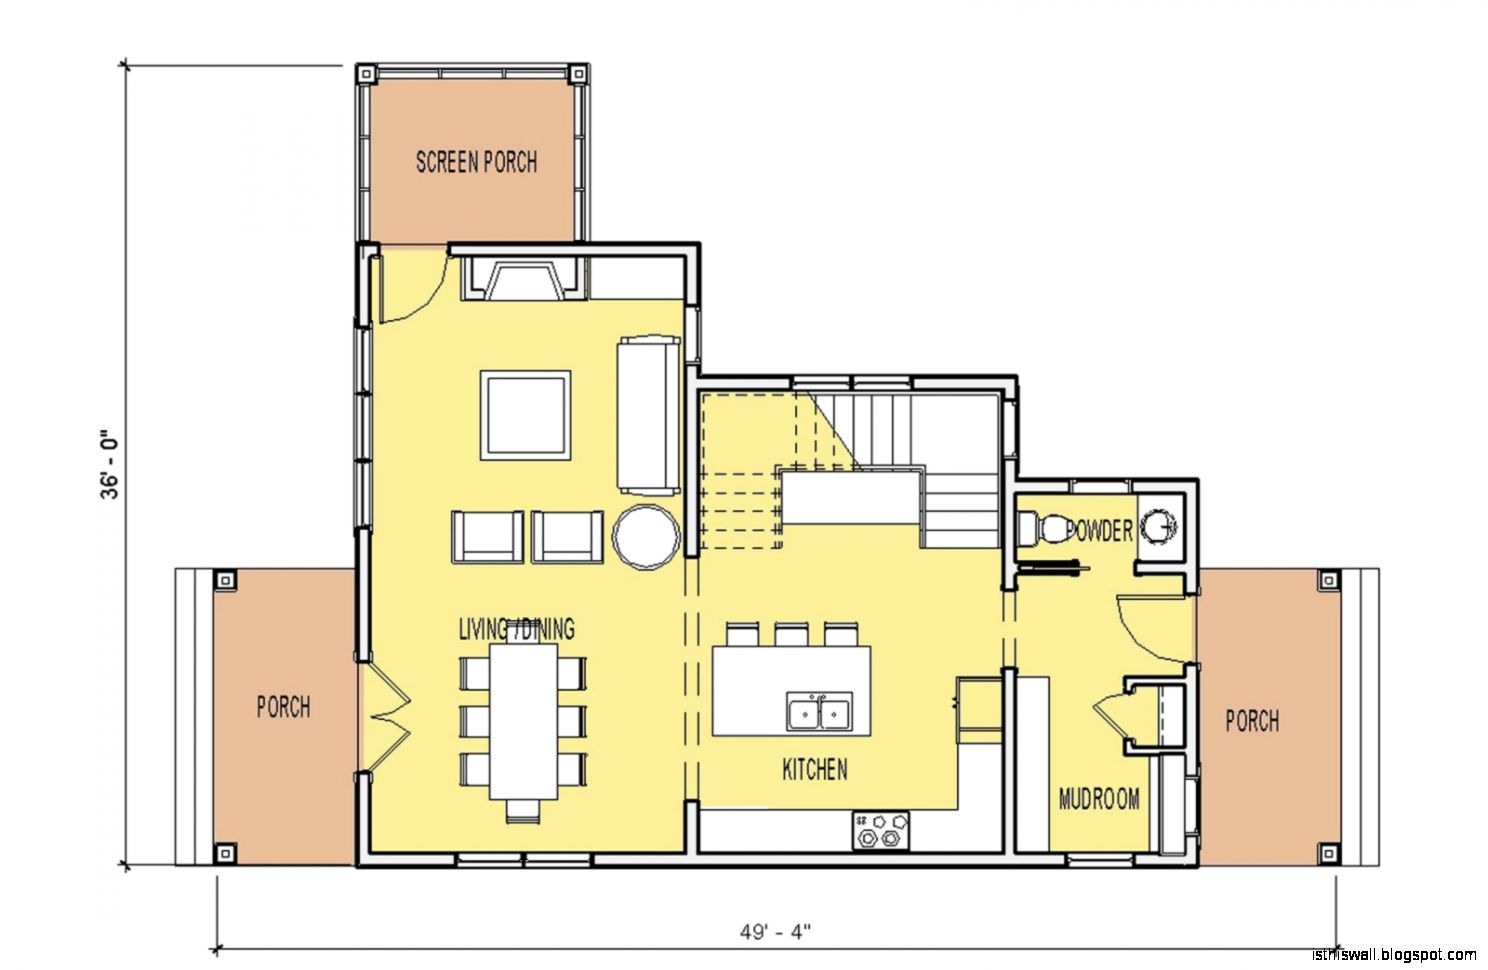 home designs wallpaper unusual small house plans wallpaper view small home plans and designs this wallpapers - Unique Small Home Plans